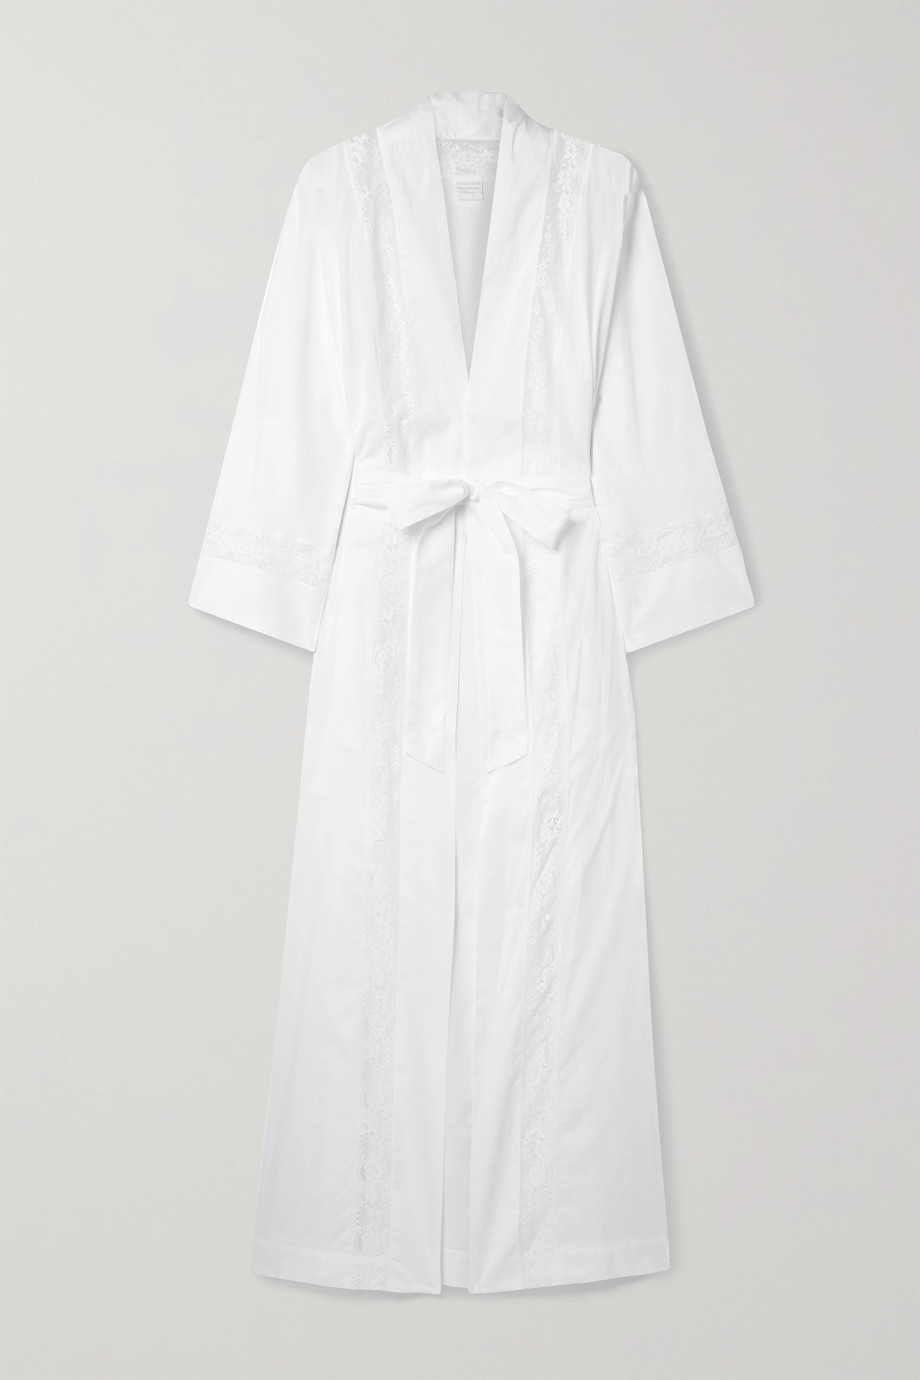 LORETTA CAPONI Clarice belted lace-paneled cotton-voile robe